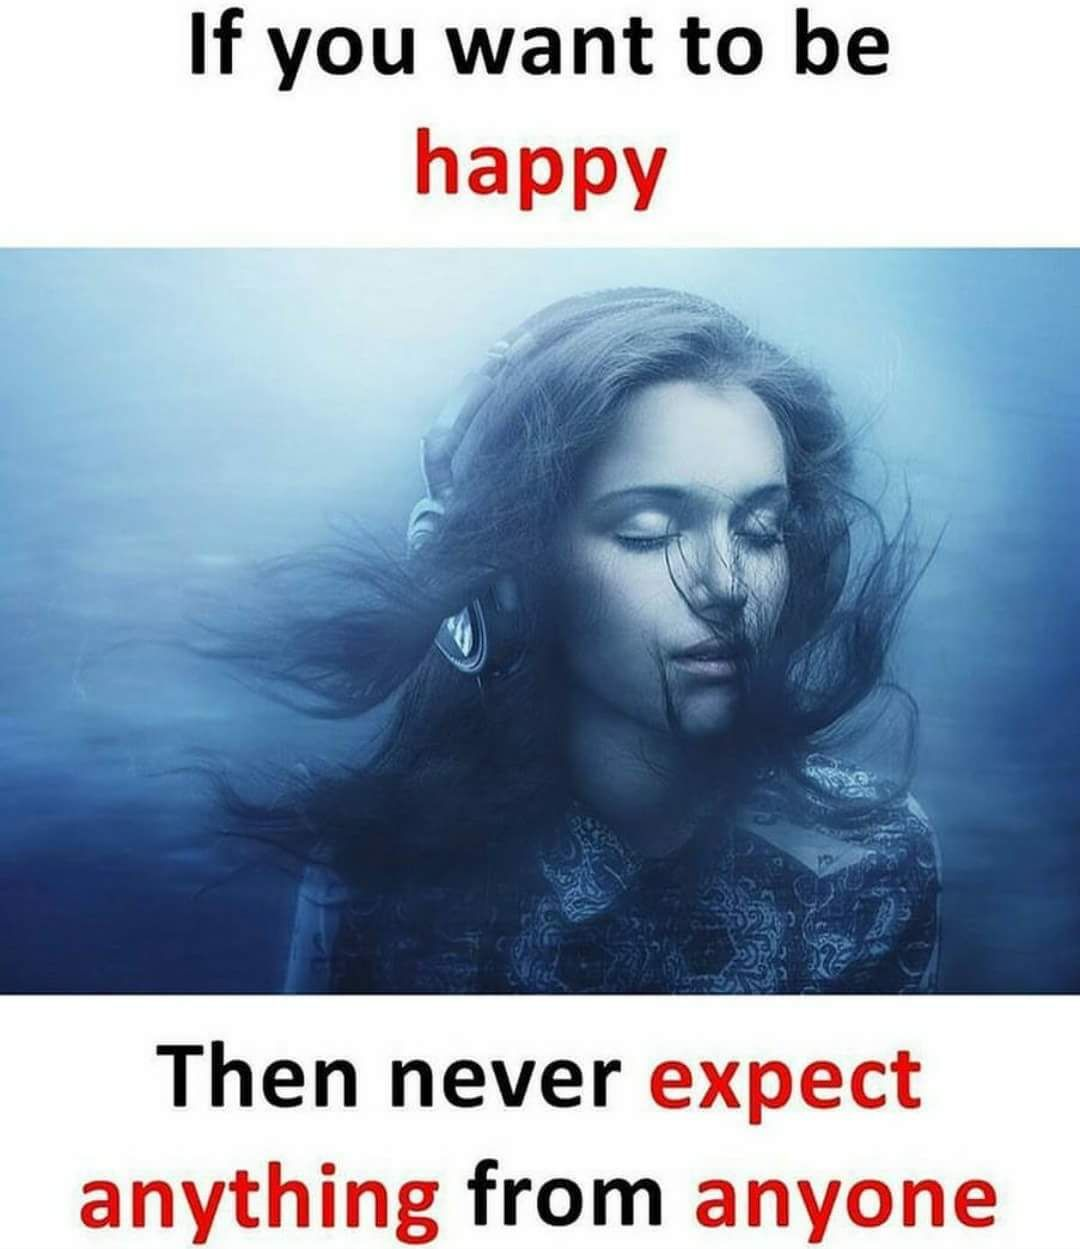 I want to be happy    And I will expect everything from u wch I want is part of Reality quotes -